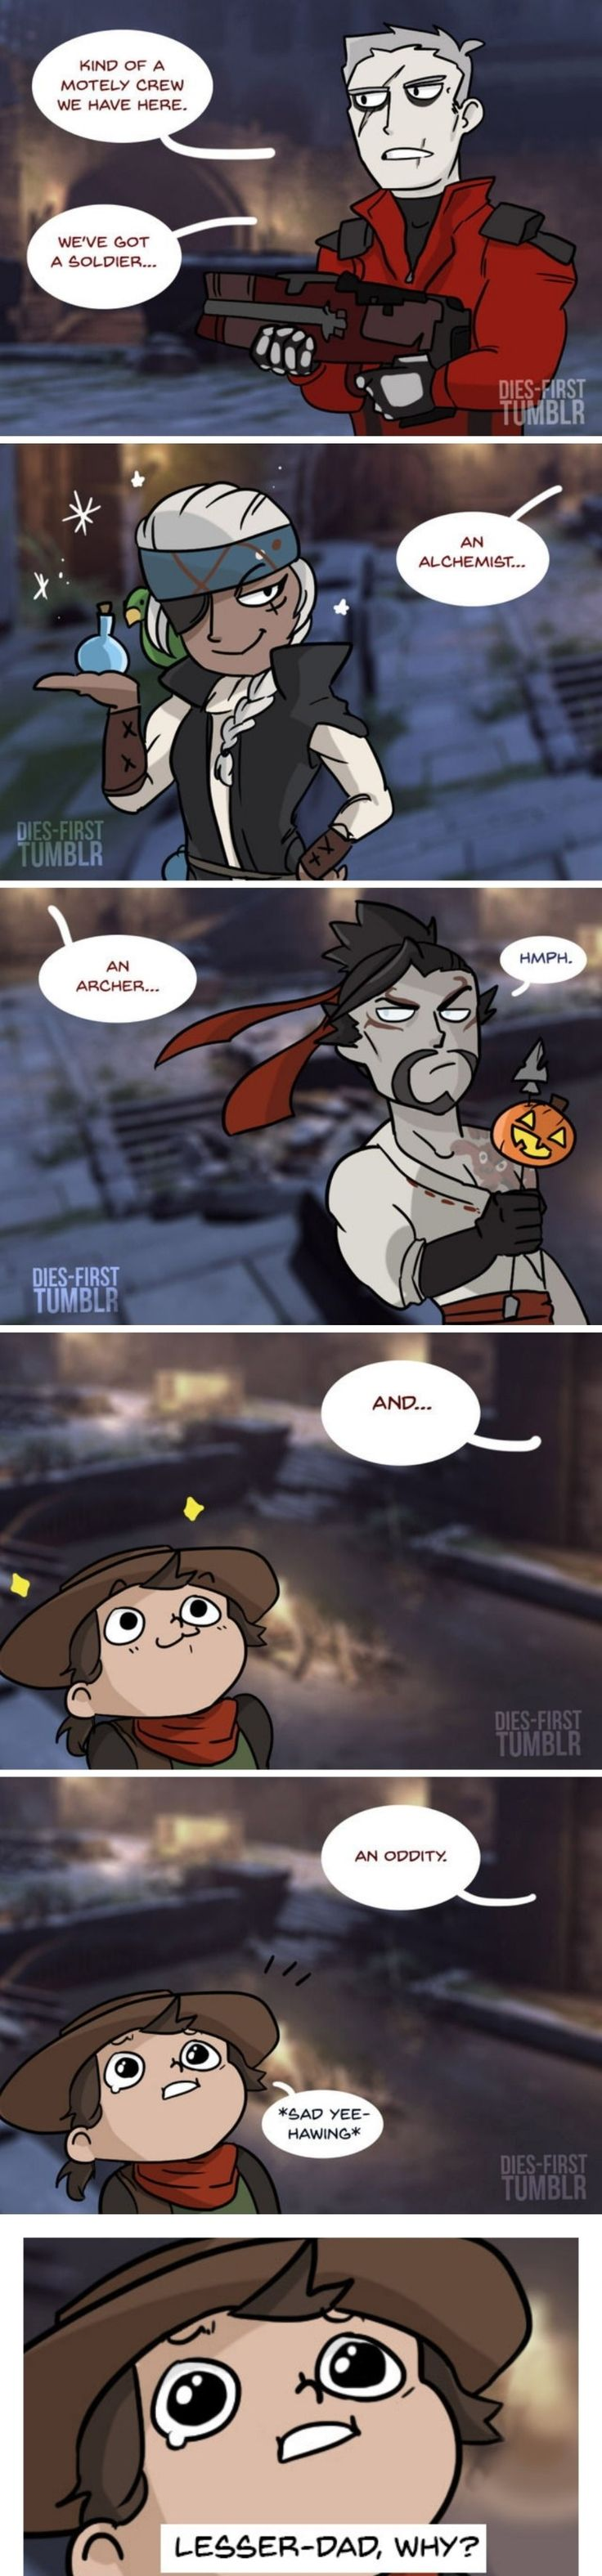 Overwatch comic - Halloween Event